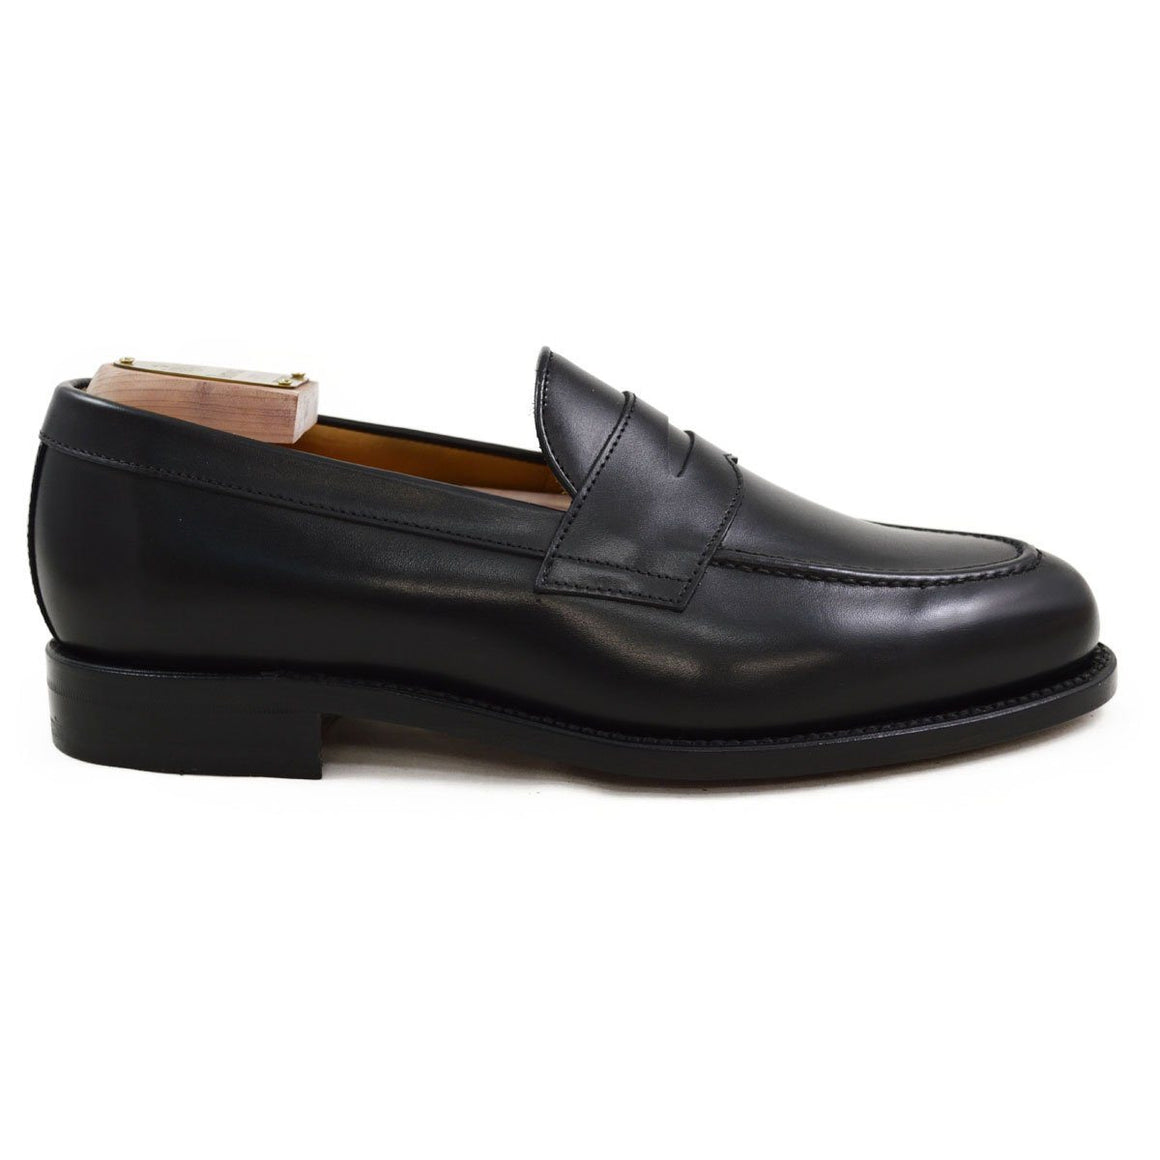 Berwick 1707 Penny Loafer - Black